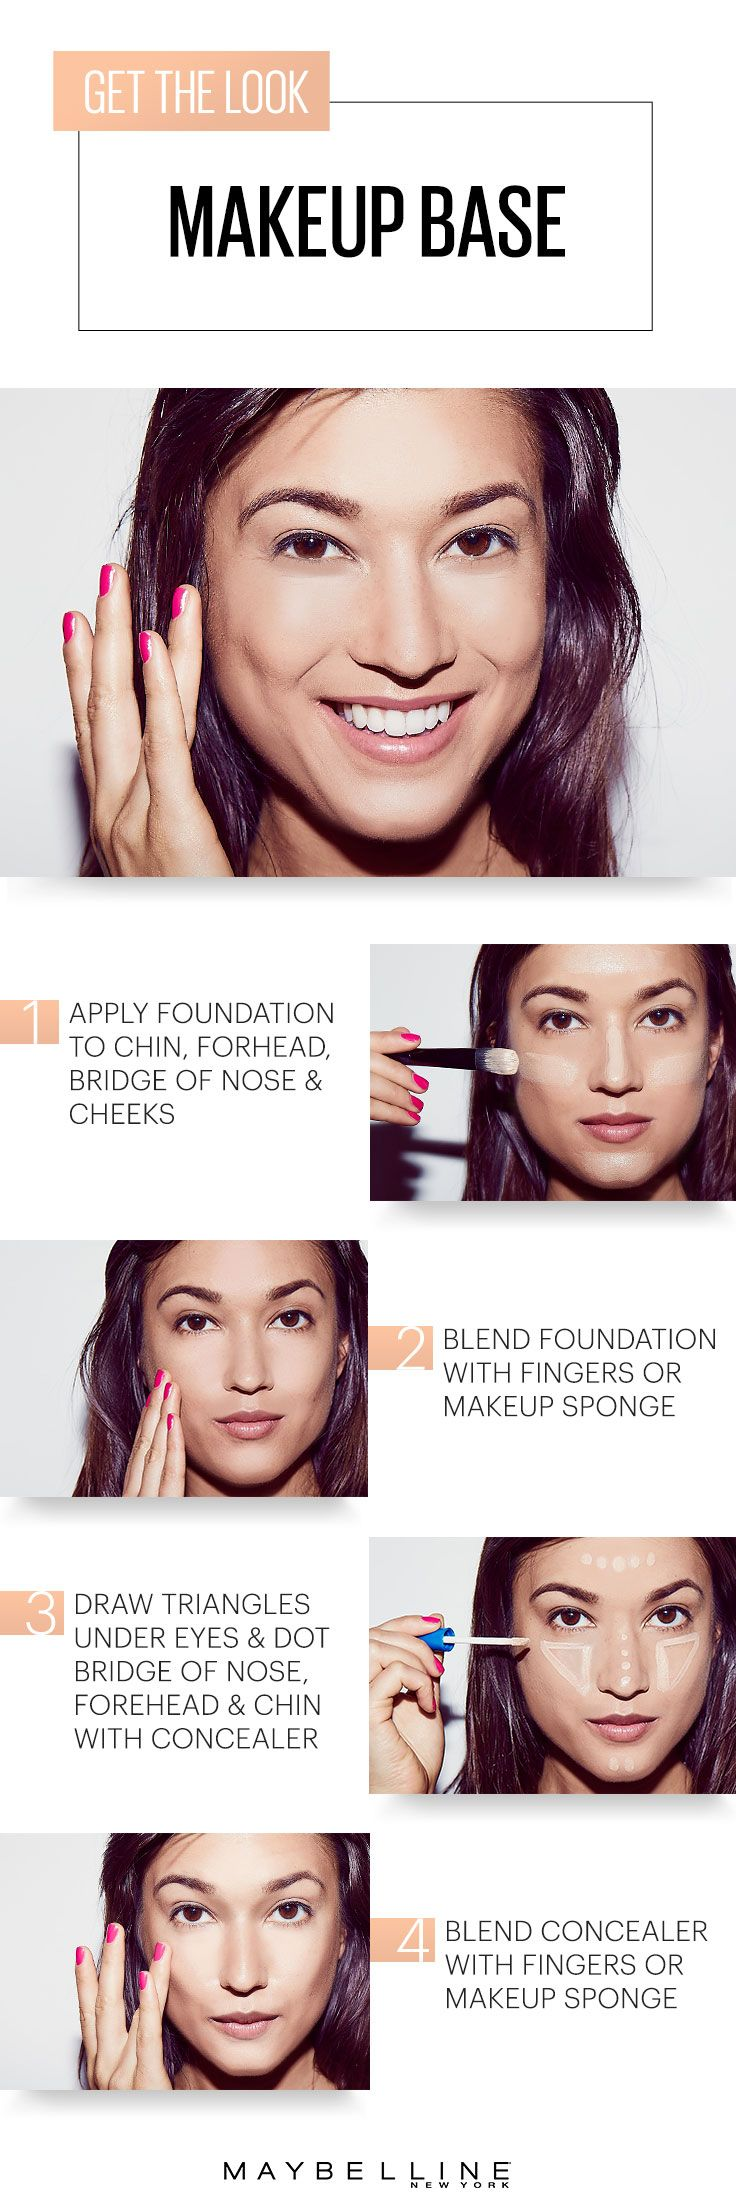 25+ best ideas about Concealer on Pinterest | Makeup 101, How to ...